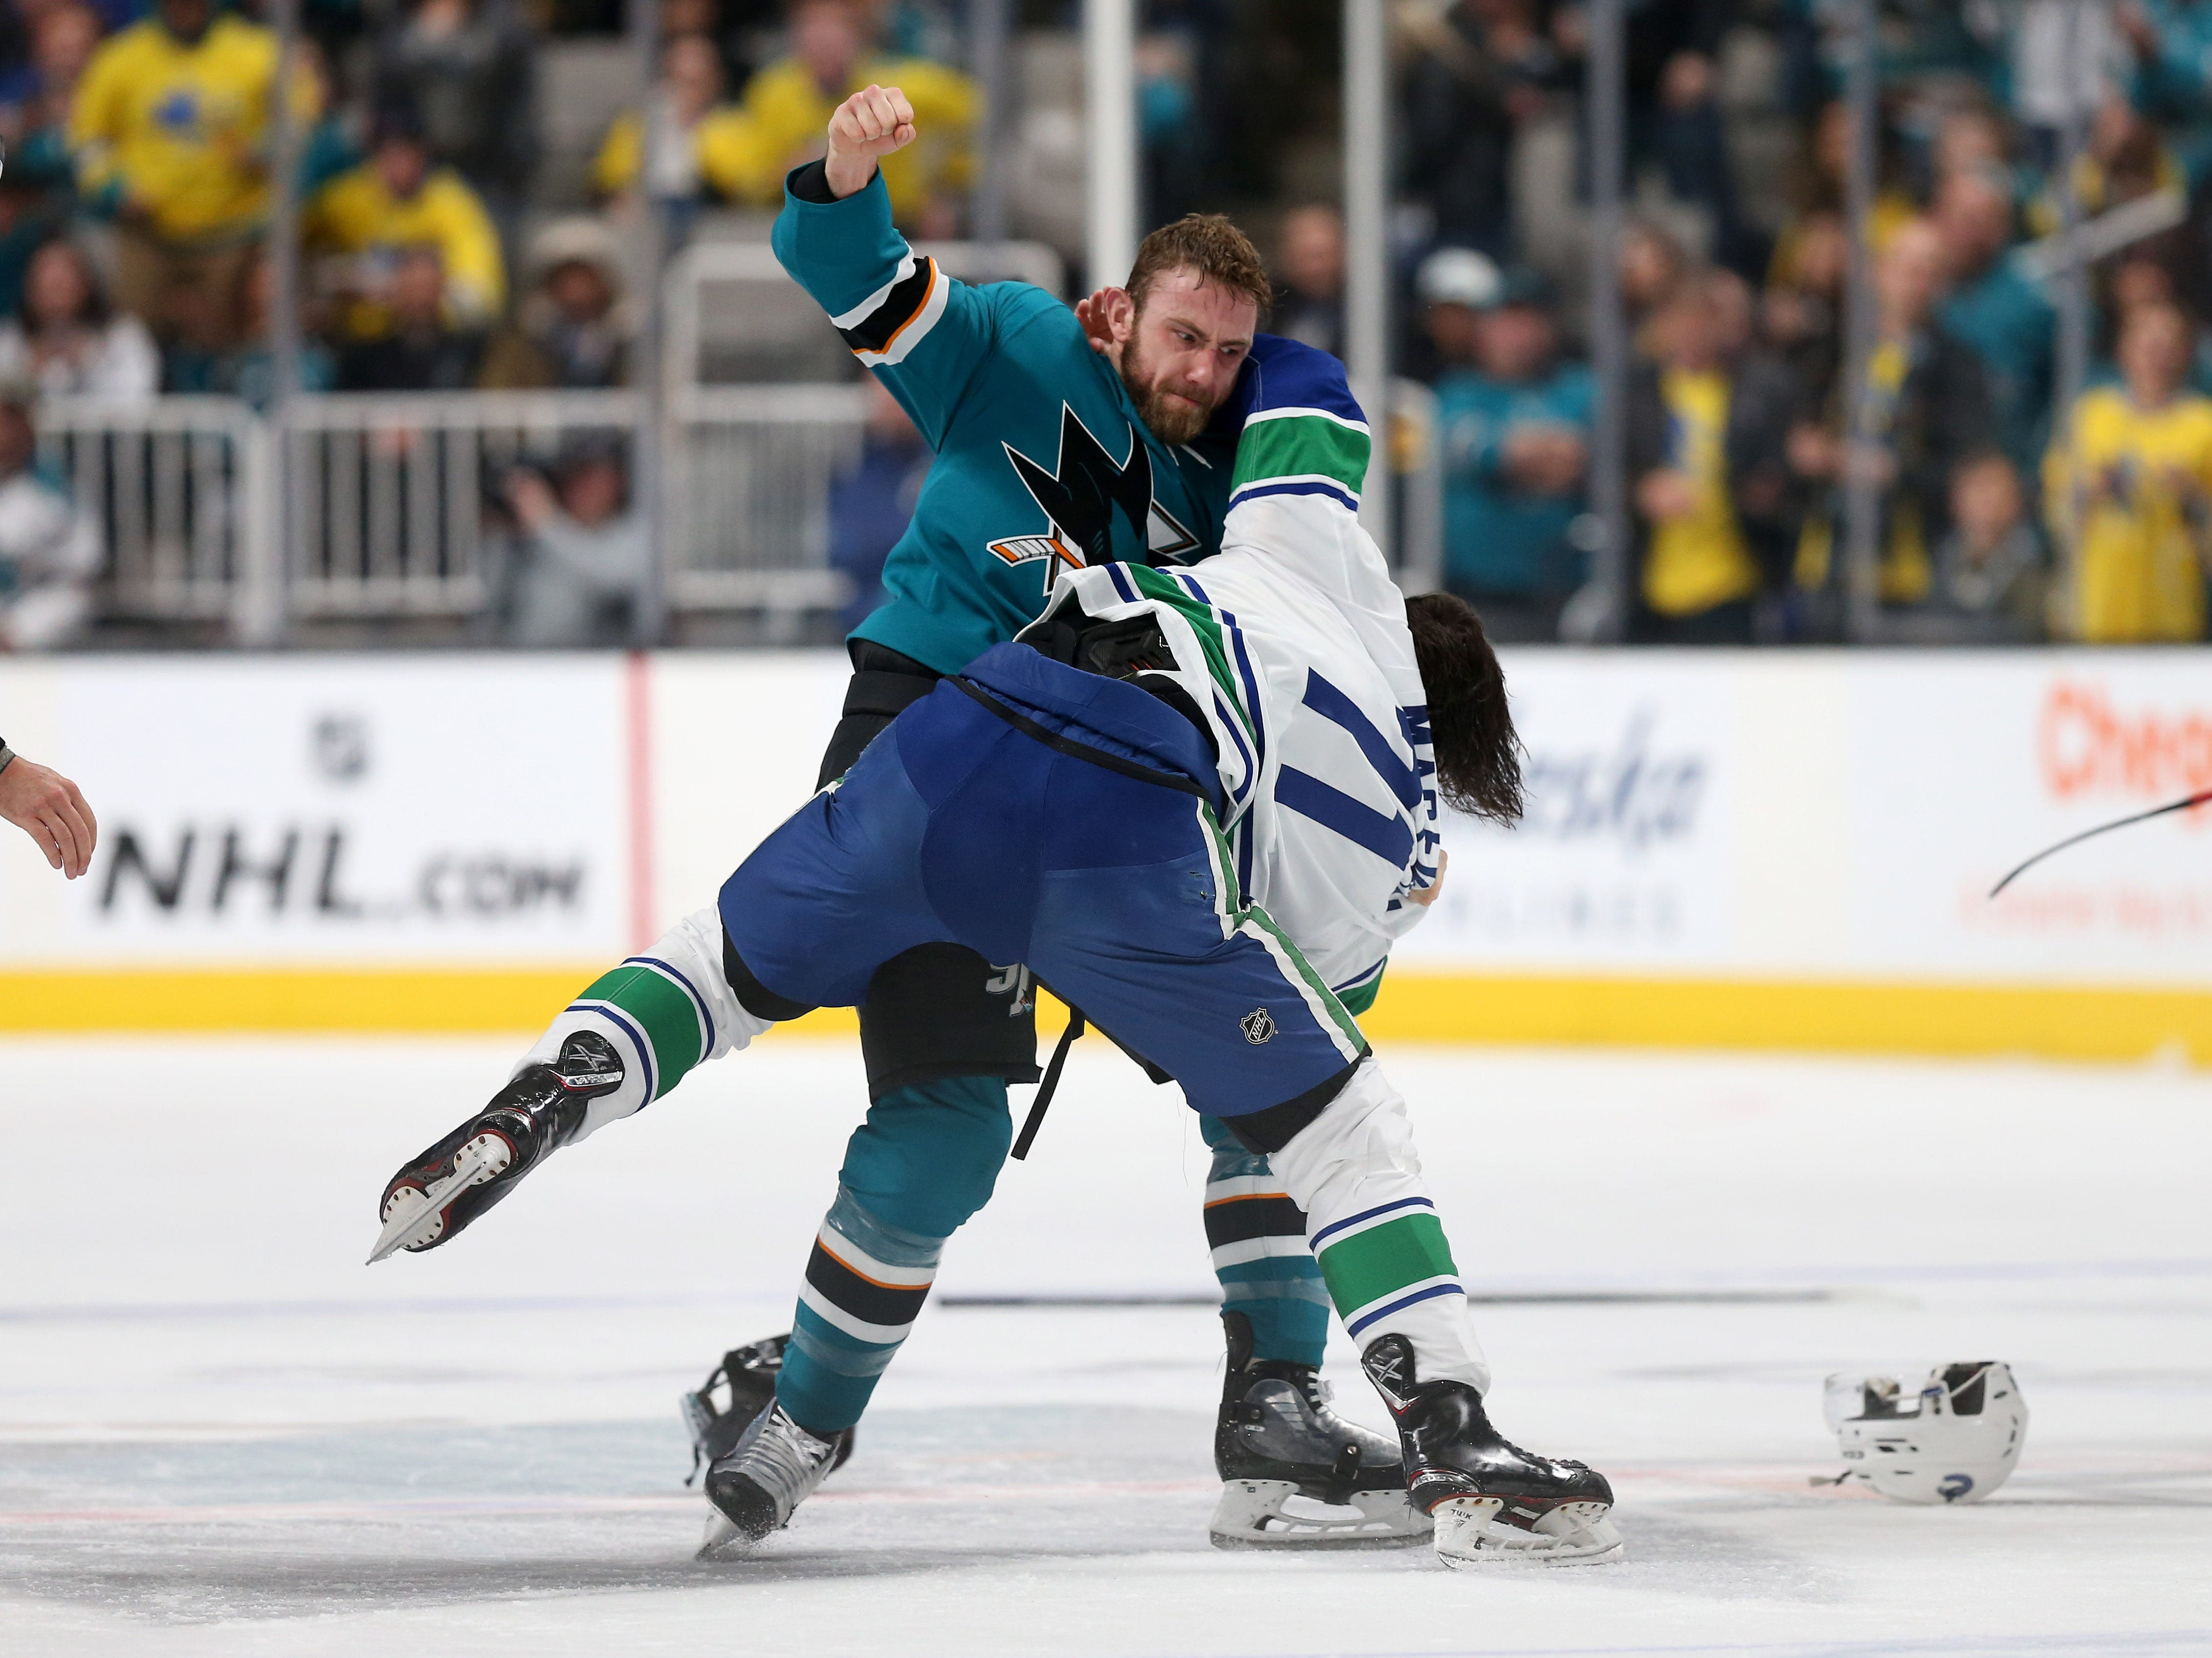 Feb. 16: San Jose Sharks' Barclay Goodrow vs. Vancouver Canucks' Zack MacEwen.